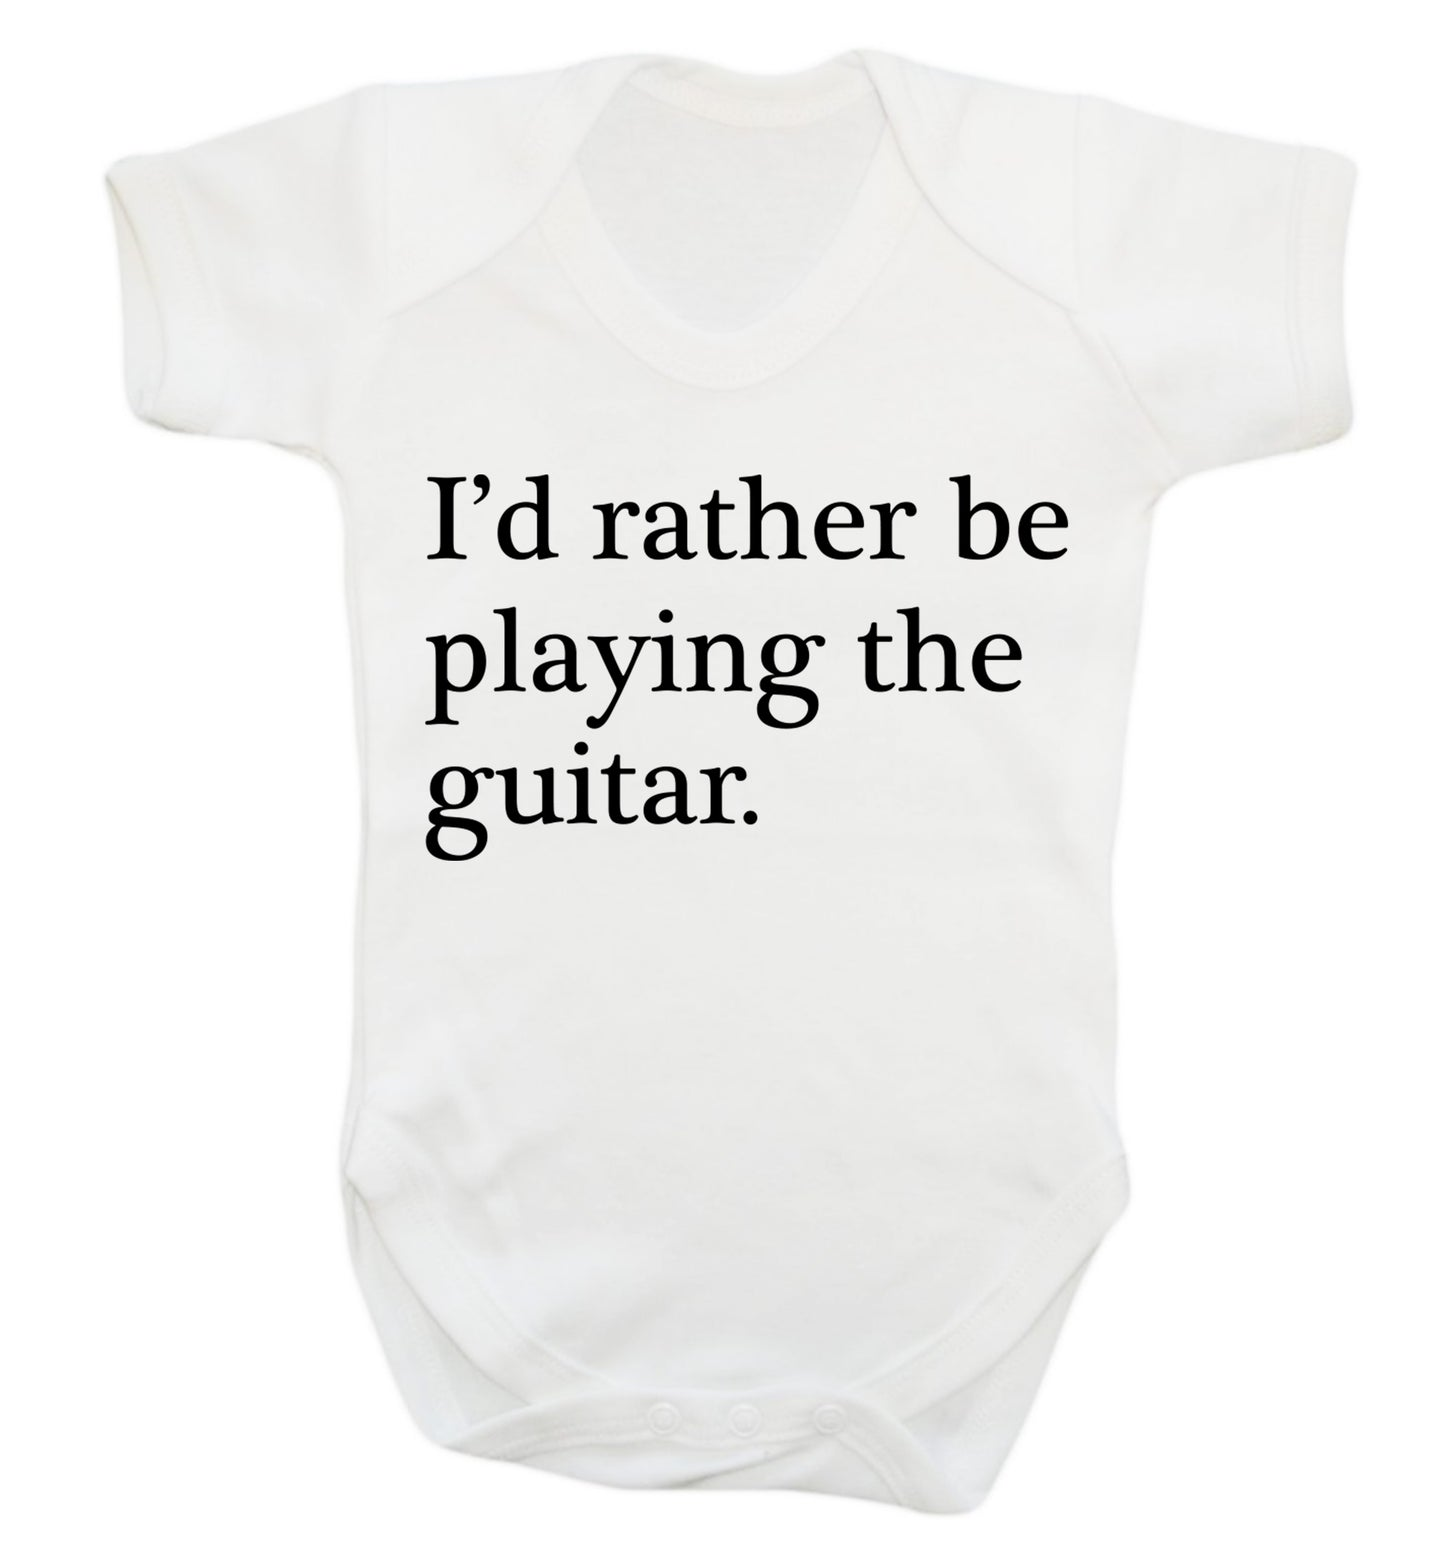 I'd rather be playing the guitar Baby Vest white 18-24 months